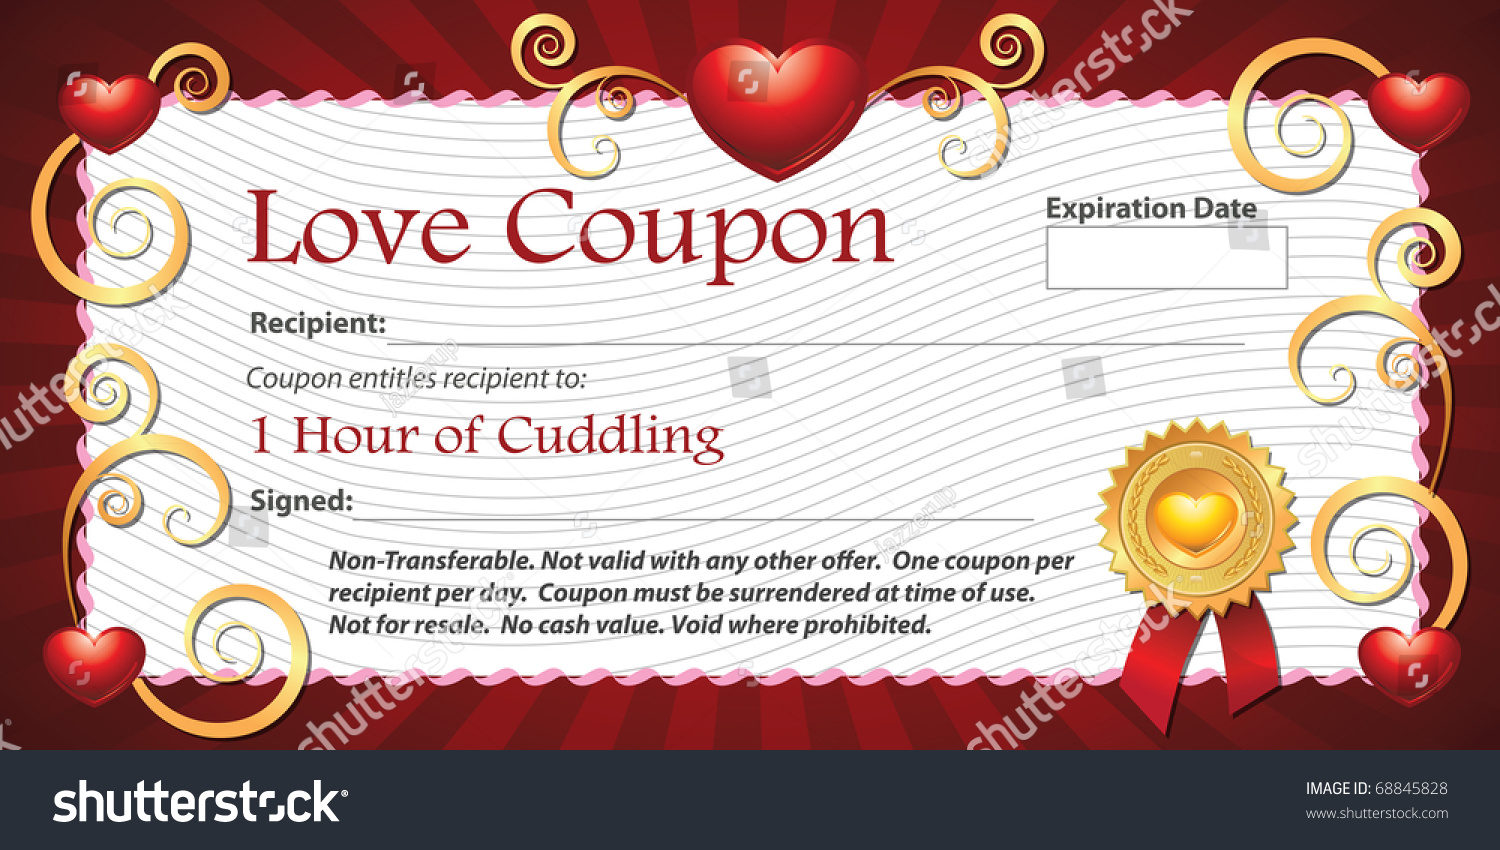 Printable coupons one hour martinizing